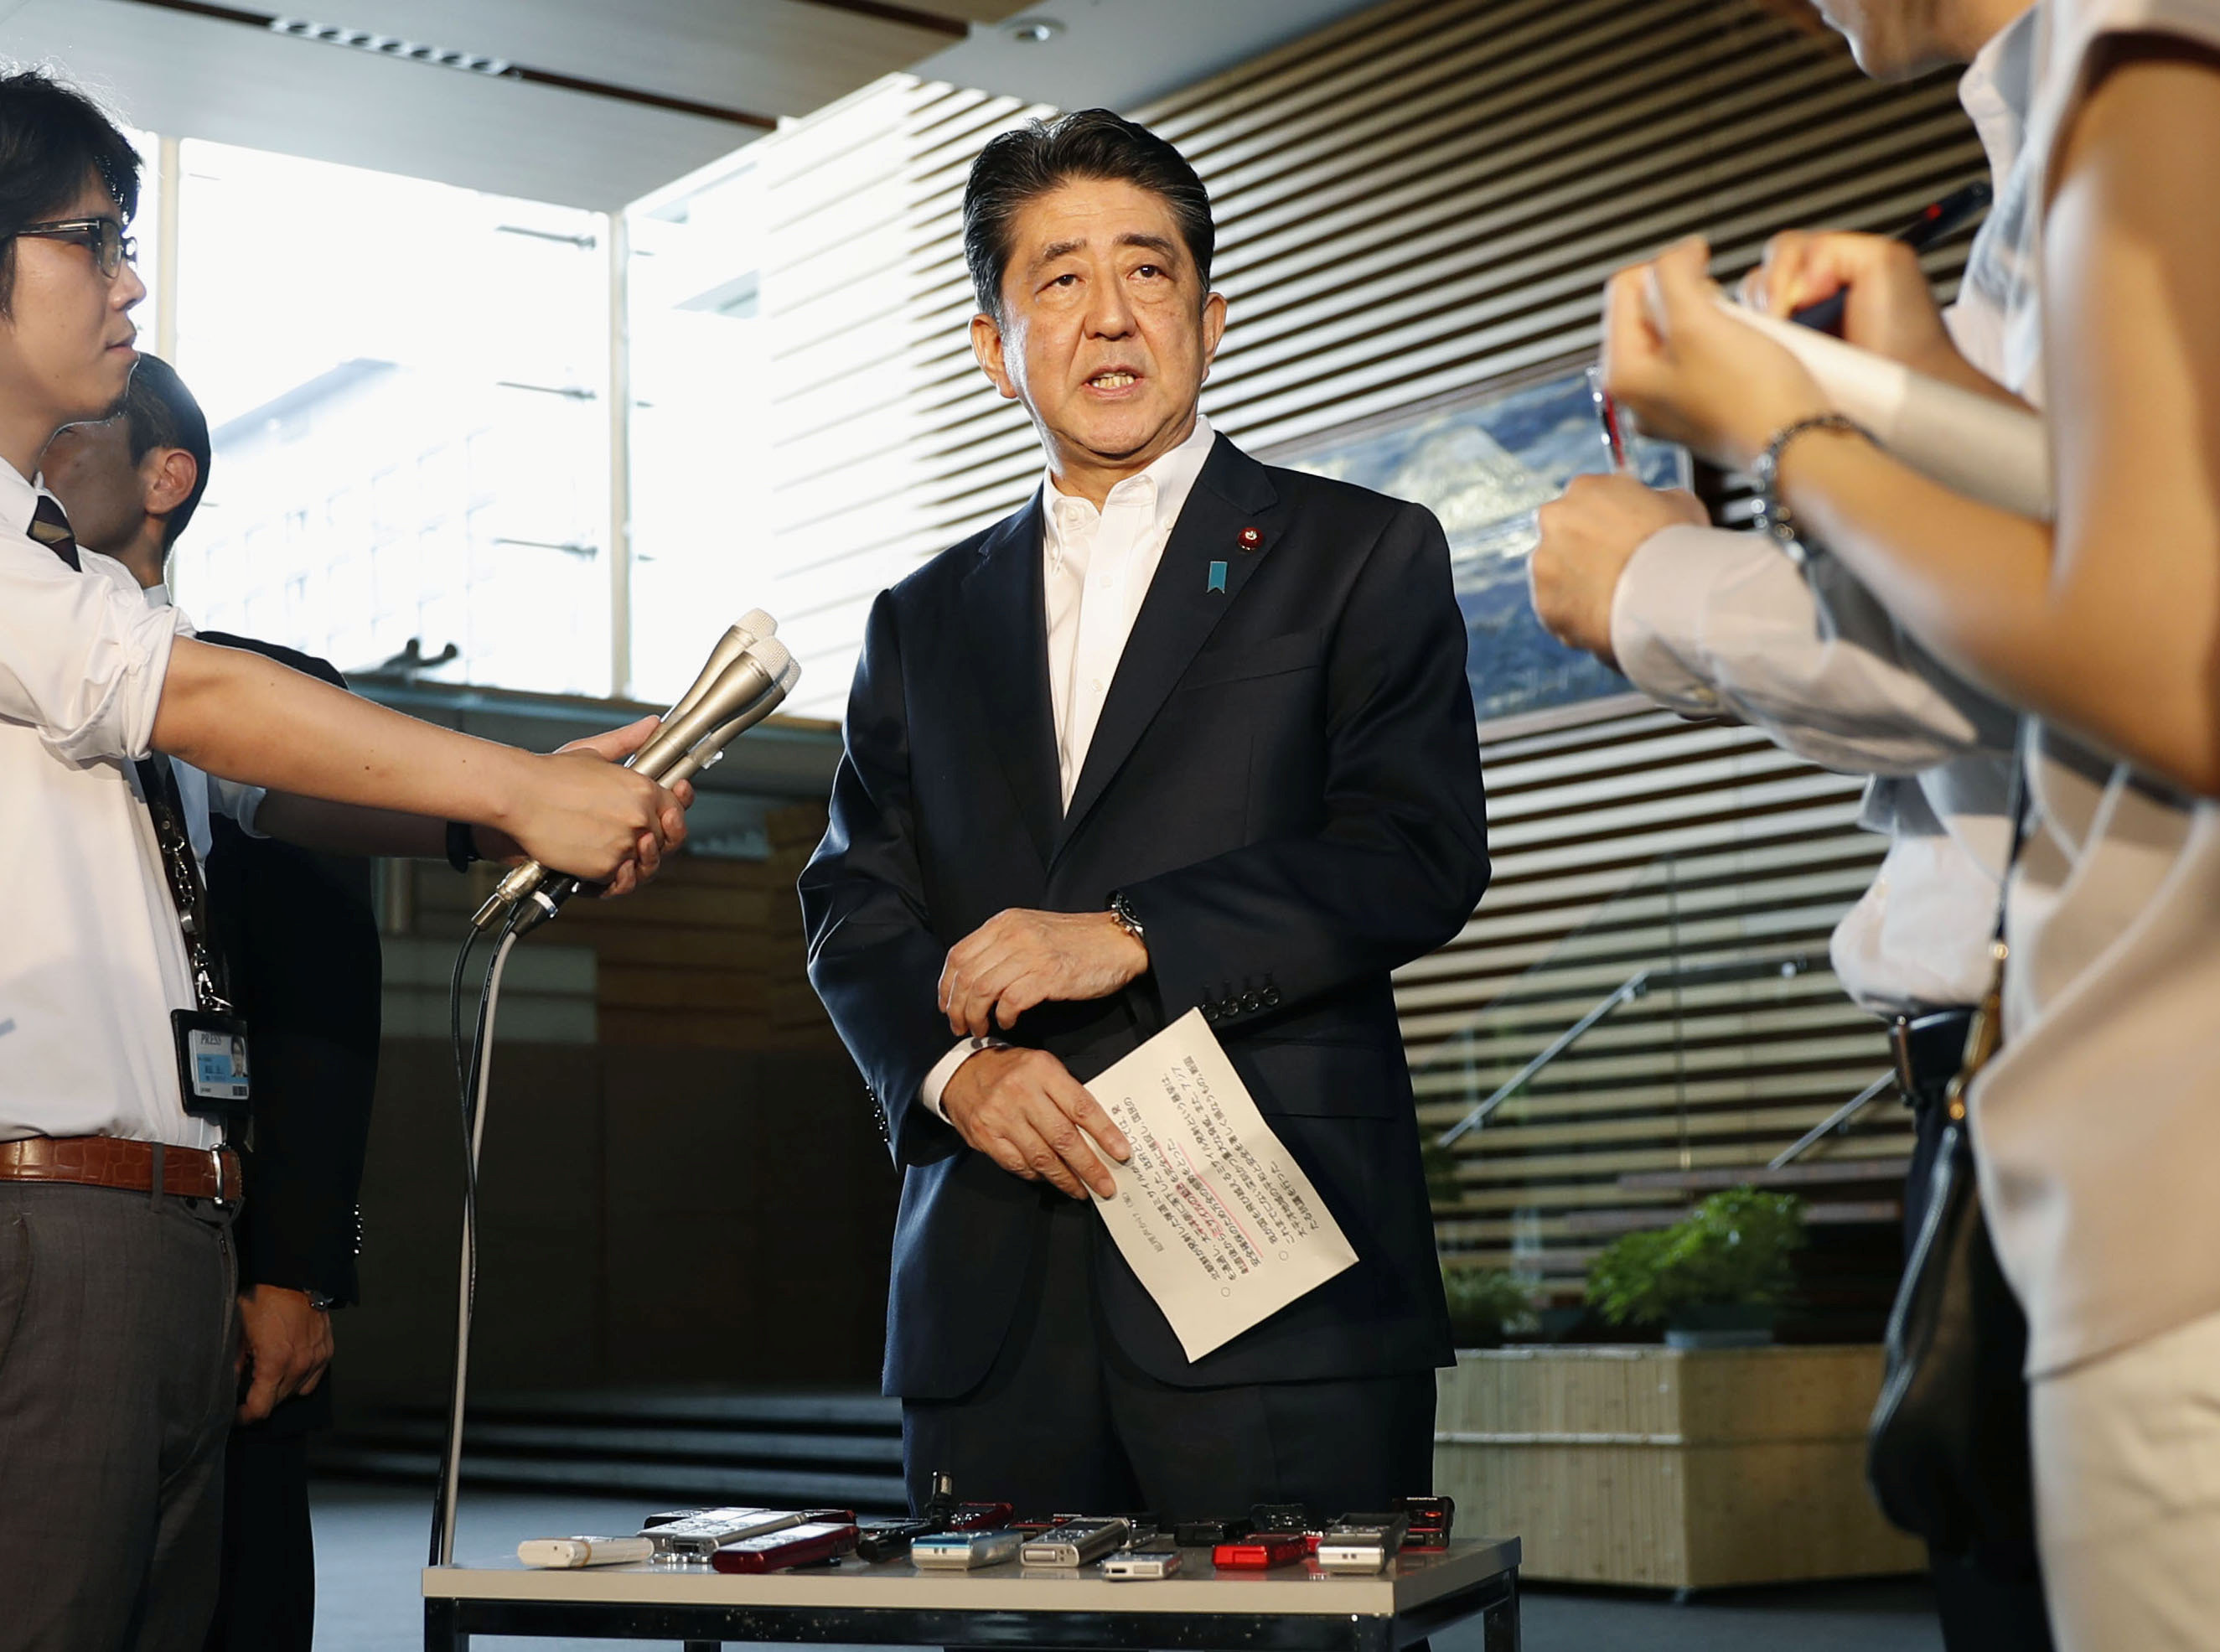 Japanese Prime Minister Shinzo Abe speaks to reporters about North Korea's missile launch in Tokyo, Japan in this photo taken by Kyodo on Aug. 29, 2017. (Kyodo/via REUTERS)